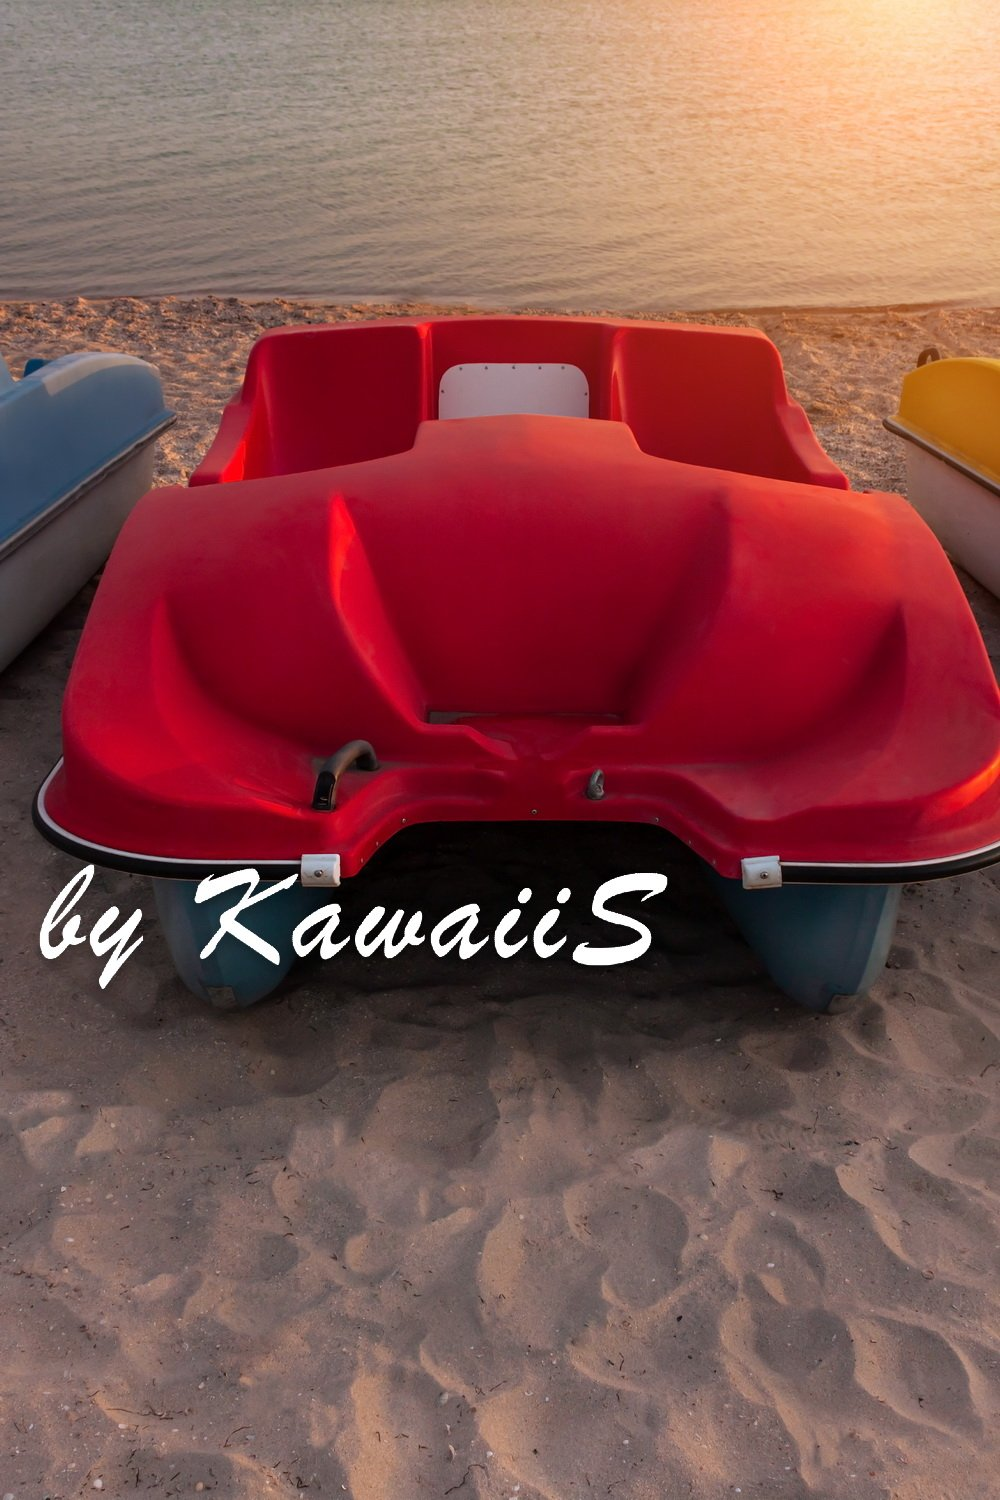 Colorful catamarans pedal boats on the sunset on a sea beach example image 8